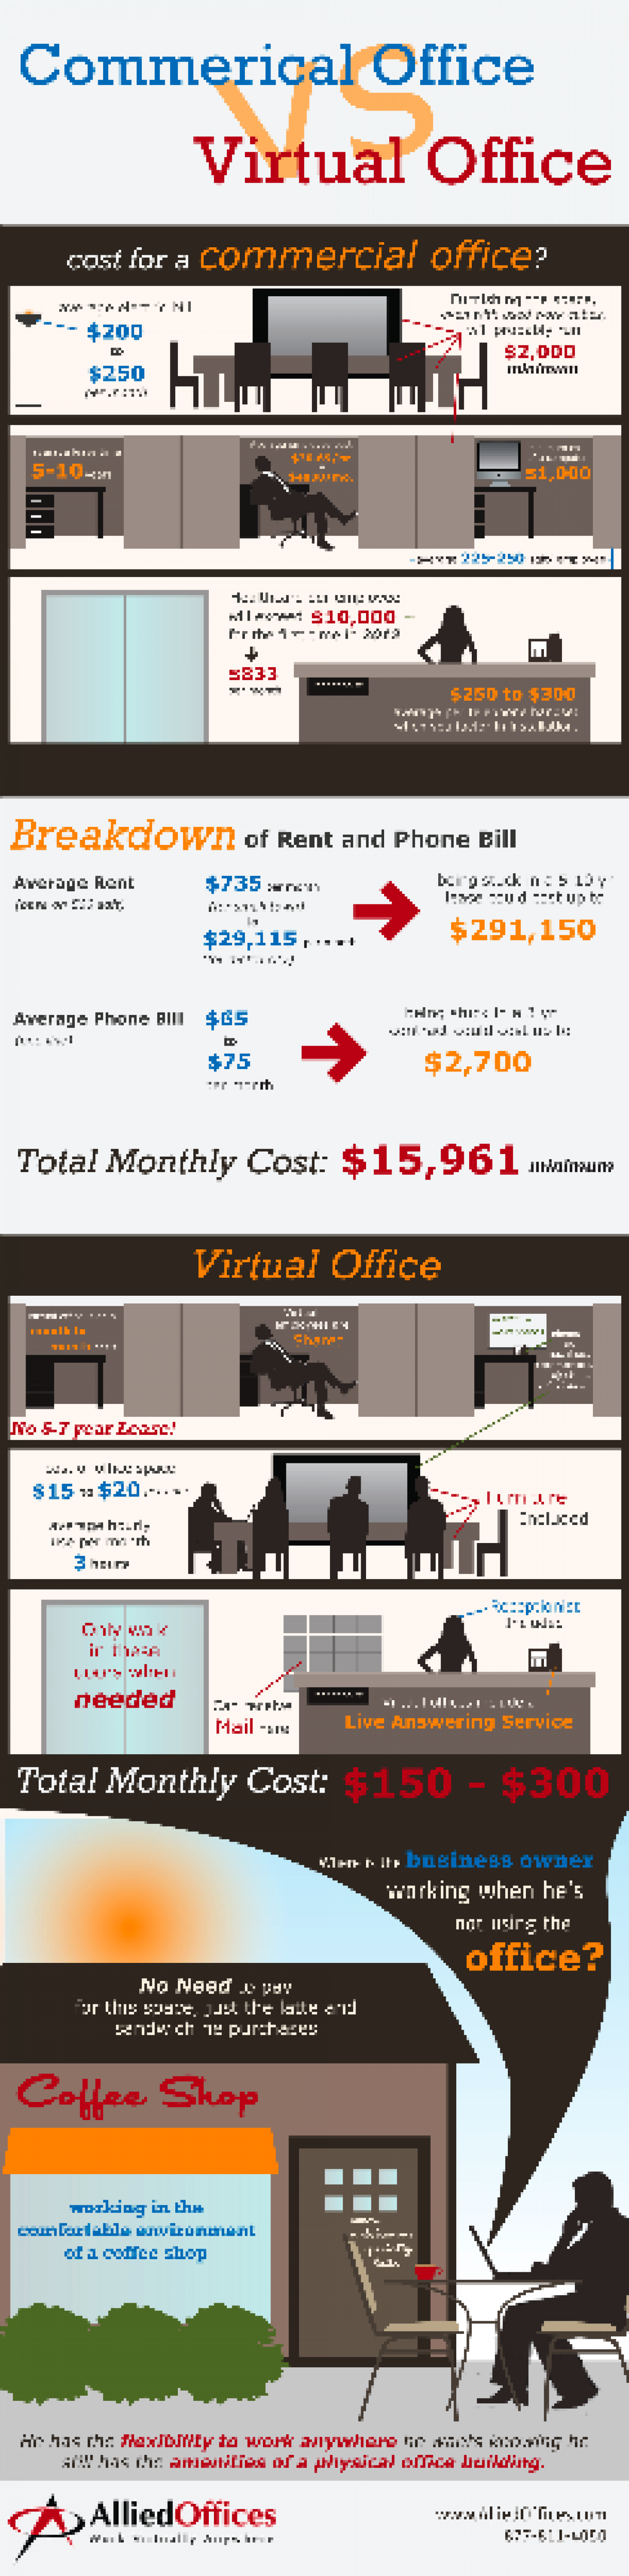 Commercial Vs Virtual Office Infographic